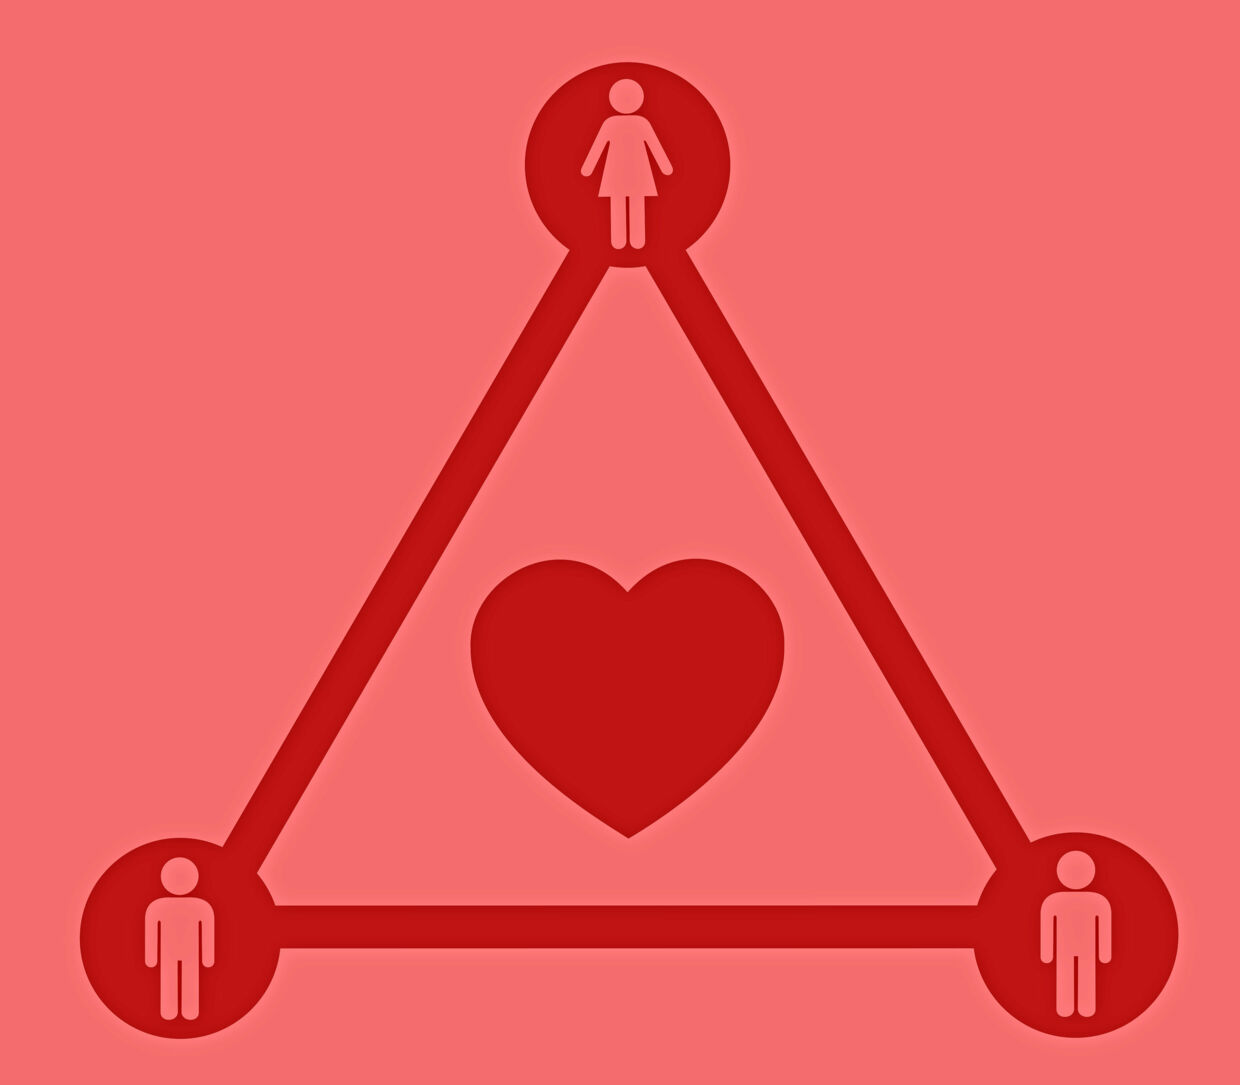 Love triangle - violation of monogamy - cheating and infidelity, polygamy and polyamory, having mistress and lover, jealousy and sharing beloved person. Simple vector illustration